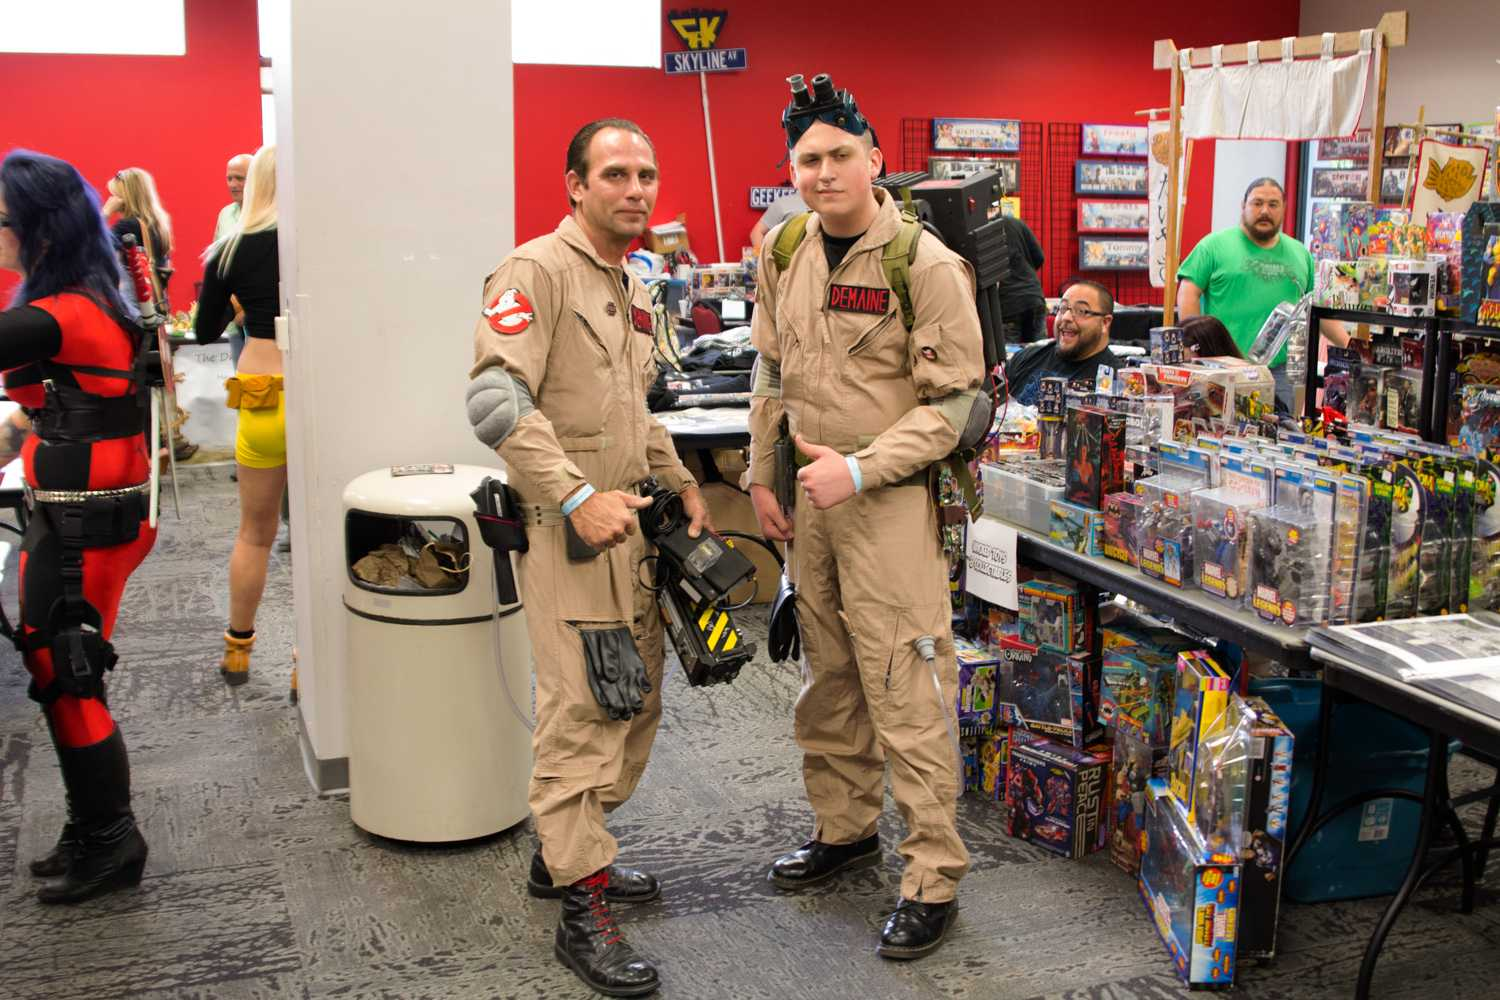 Mike DeMaine (left) and Vincent DeMaine (right) dressed as proton-pack slinging Ghostbusters from the movie Ghostbusters at Geekfest.